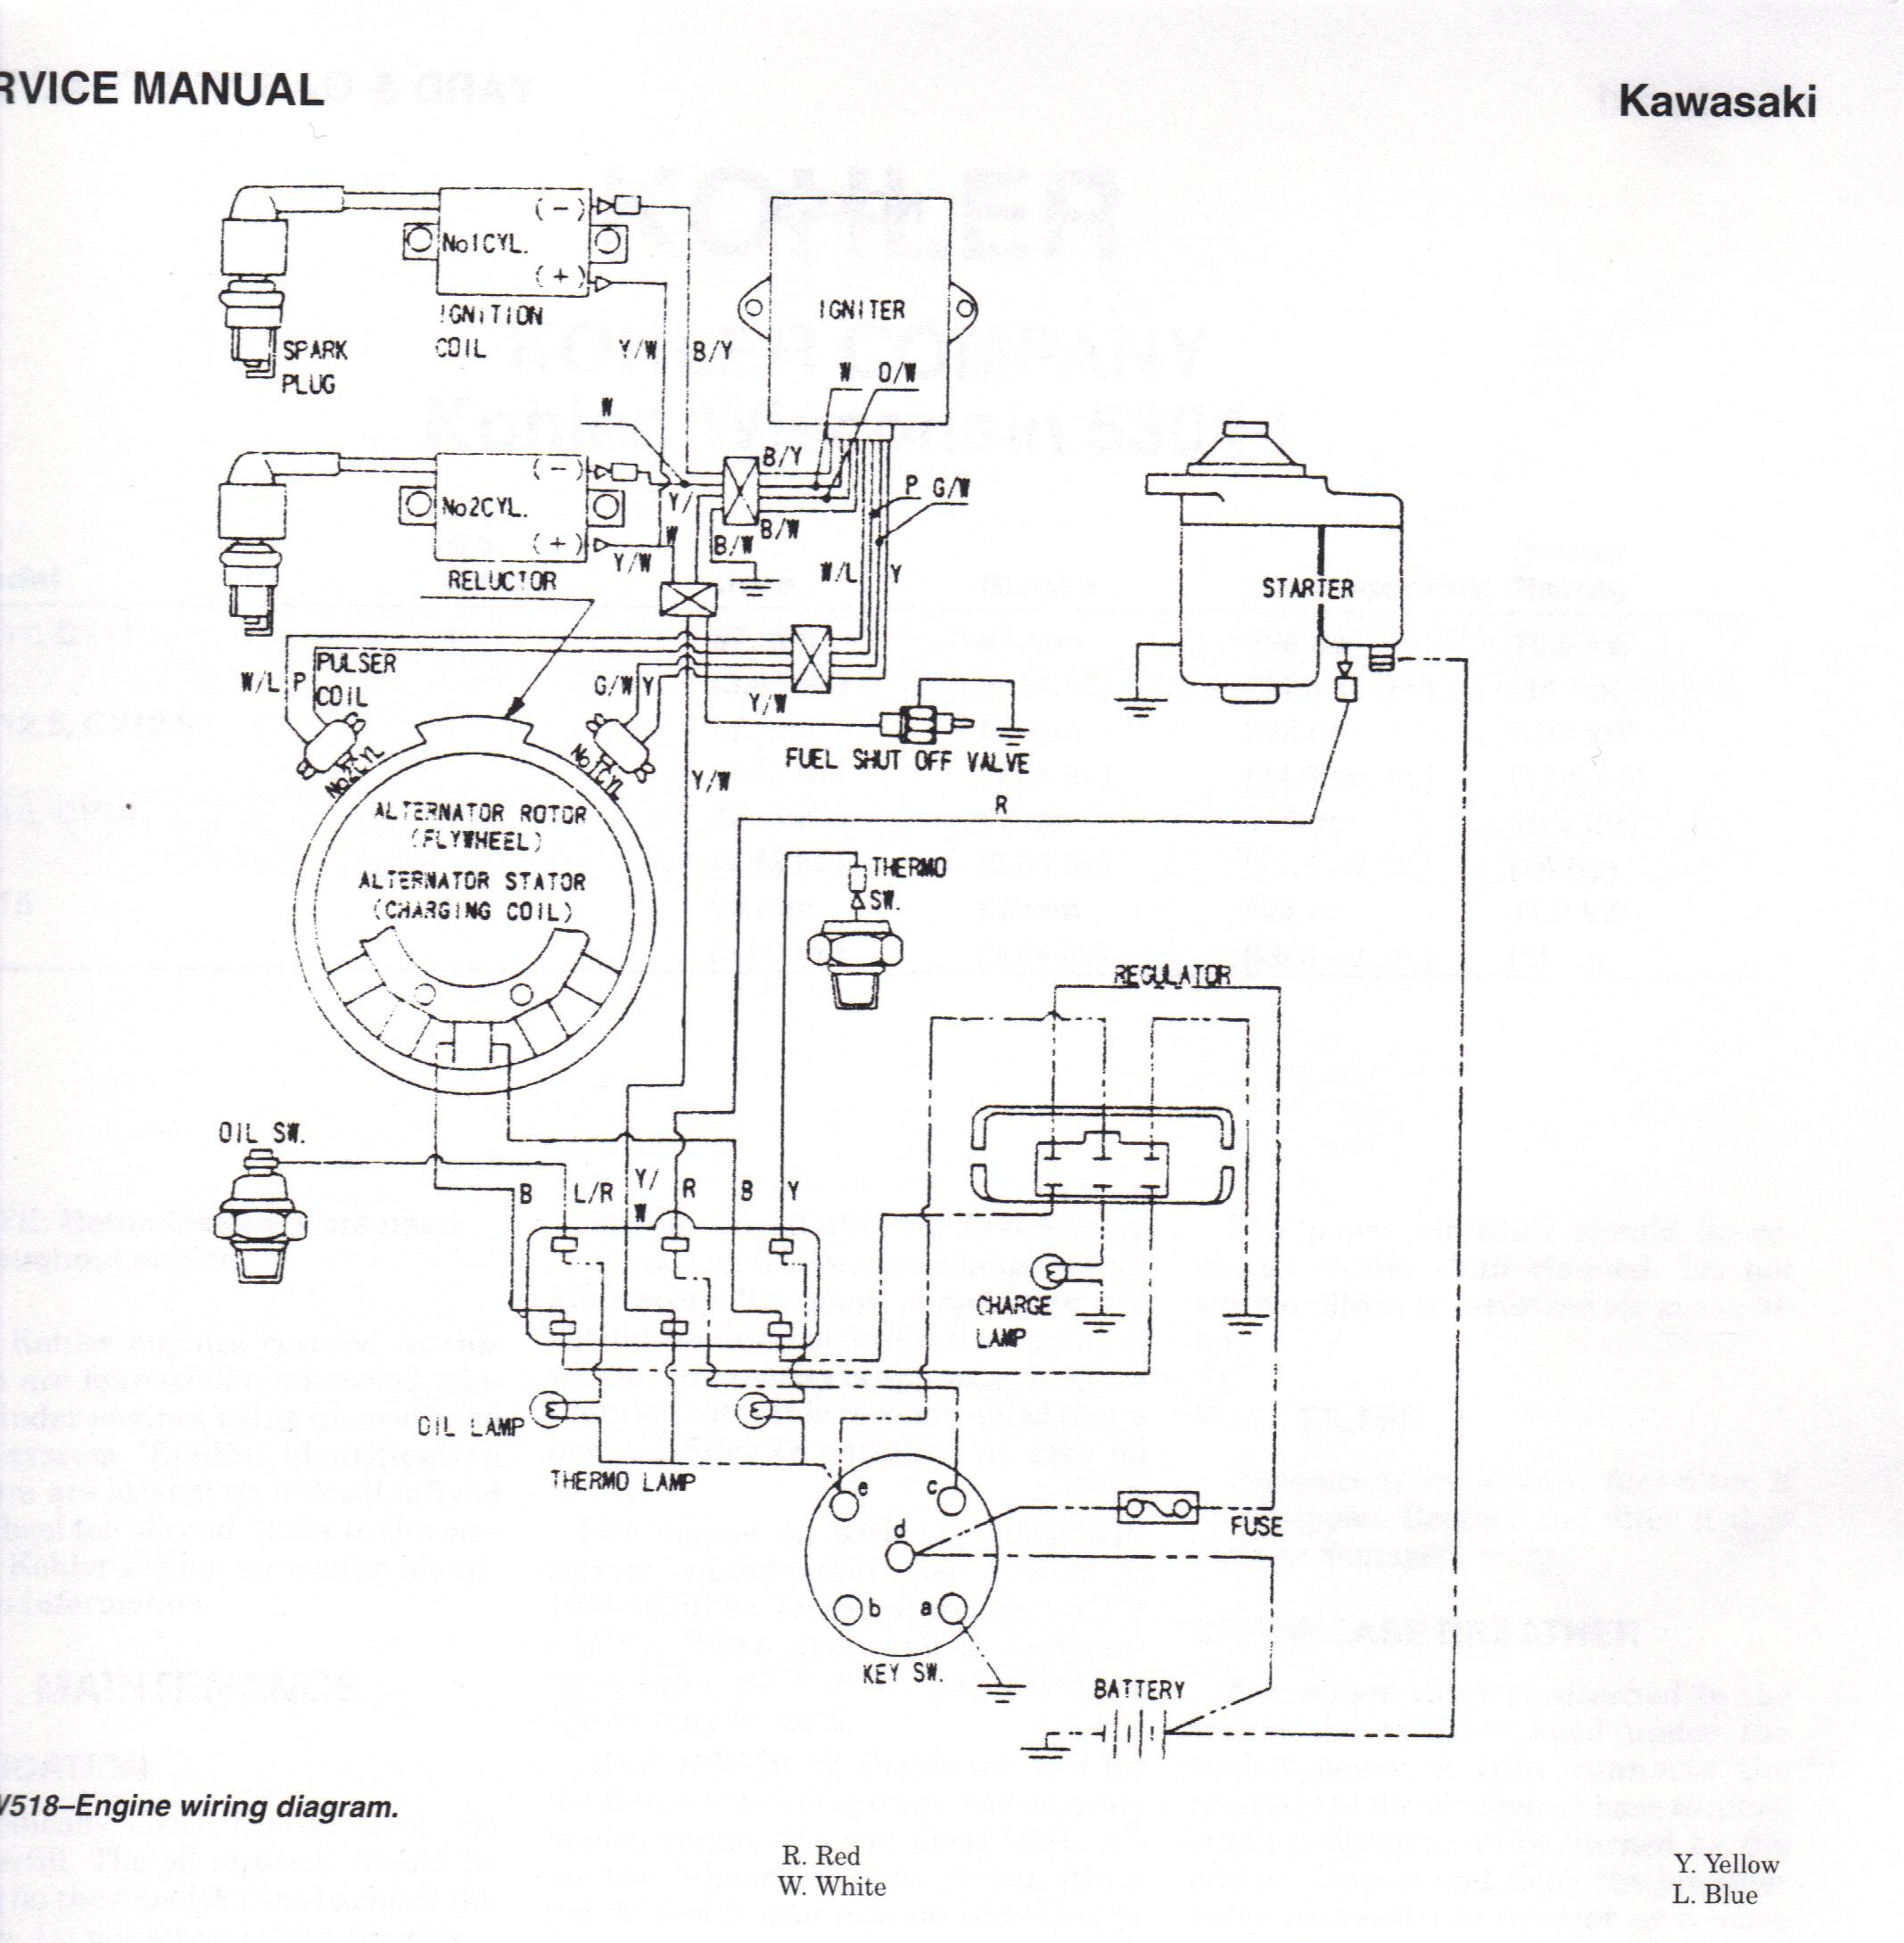 wiring diagrams for john deere further 300 with 8 Horse Kohler Small Engine Wiring Diagram on John Deere 48 Mower Deck Belt Diagram On John Deere Gt235 Wiring furthermore John Deere 214 Wiring Harness Diagram likewise 314 John Deere Tractor Wiring Diagrams as well Vw Engine Parts Diagram in addition Car Carpet Replacement.